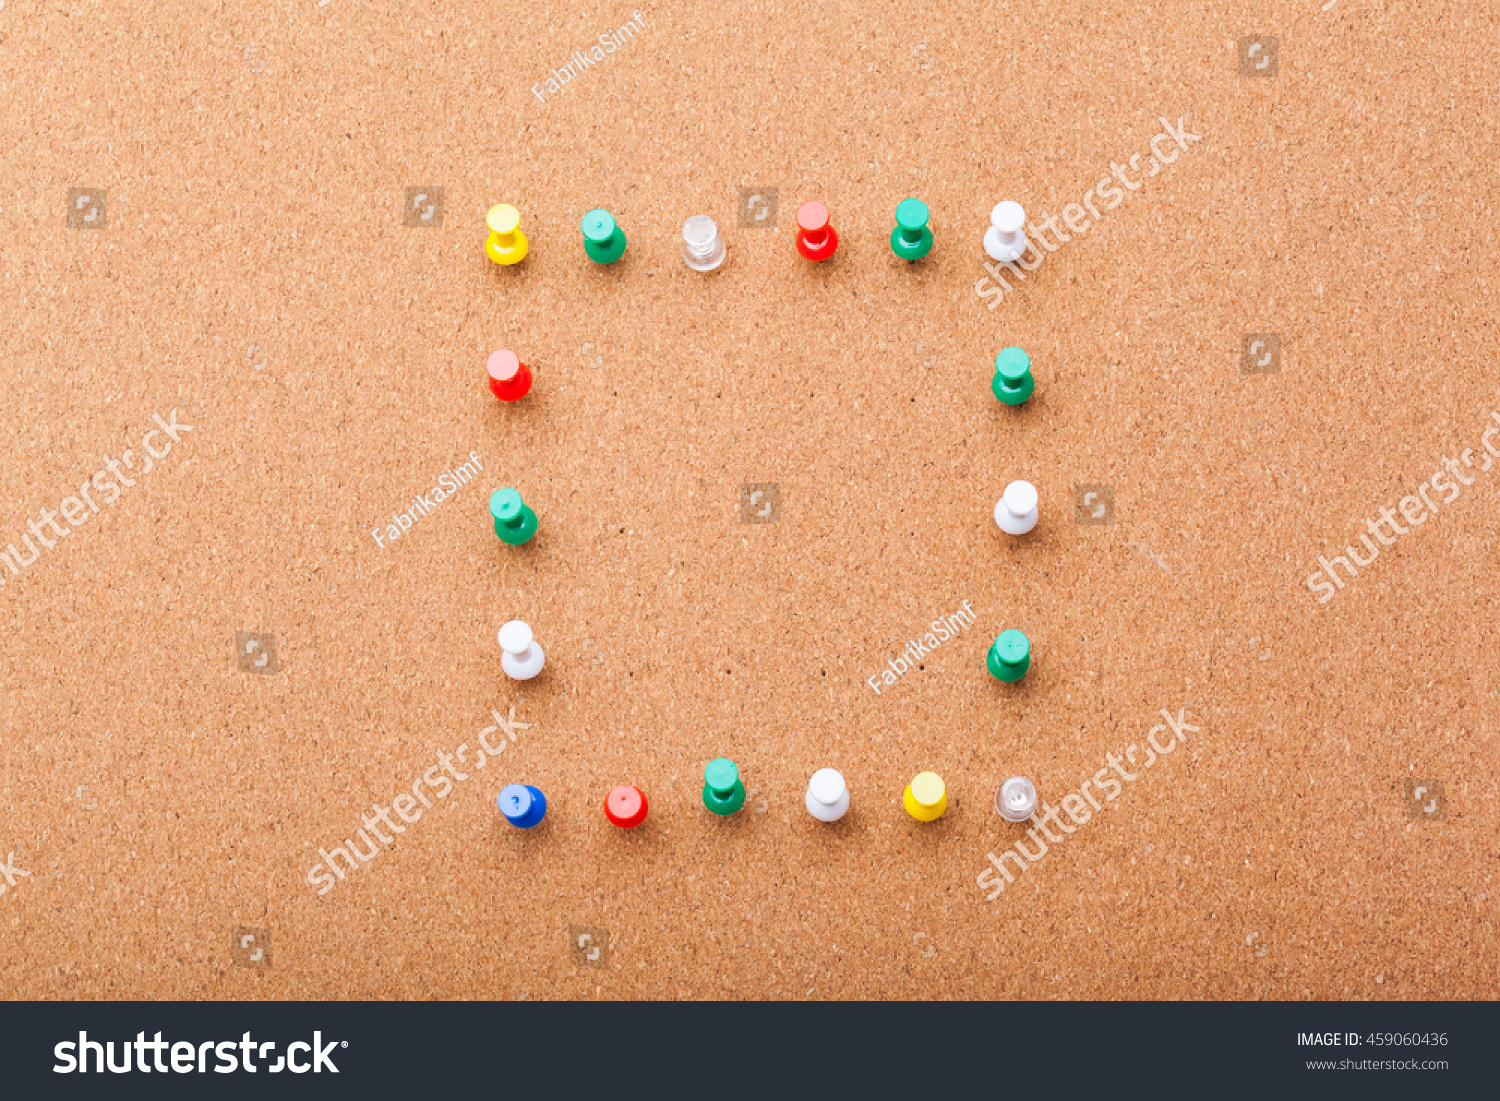 Free Stock Photo 10828 Five Colored Pins on Brown Cork